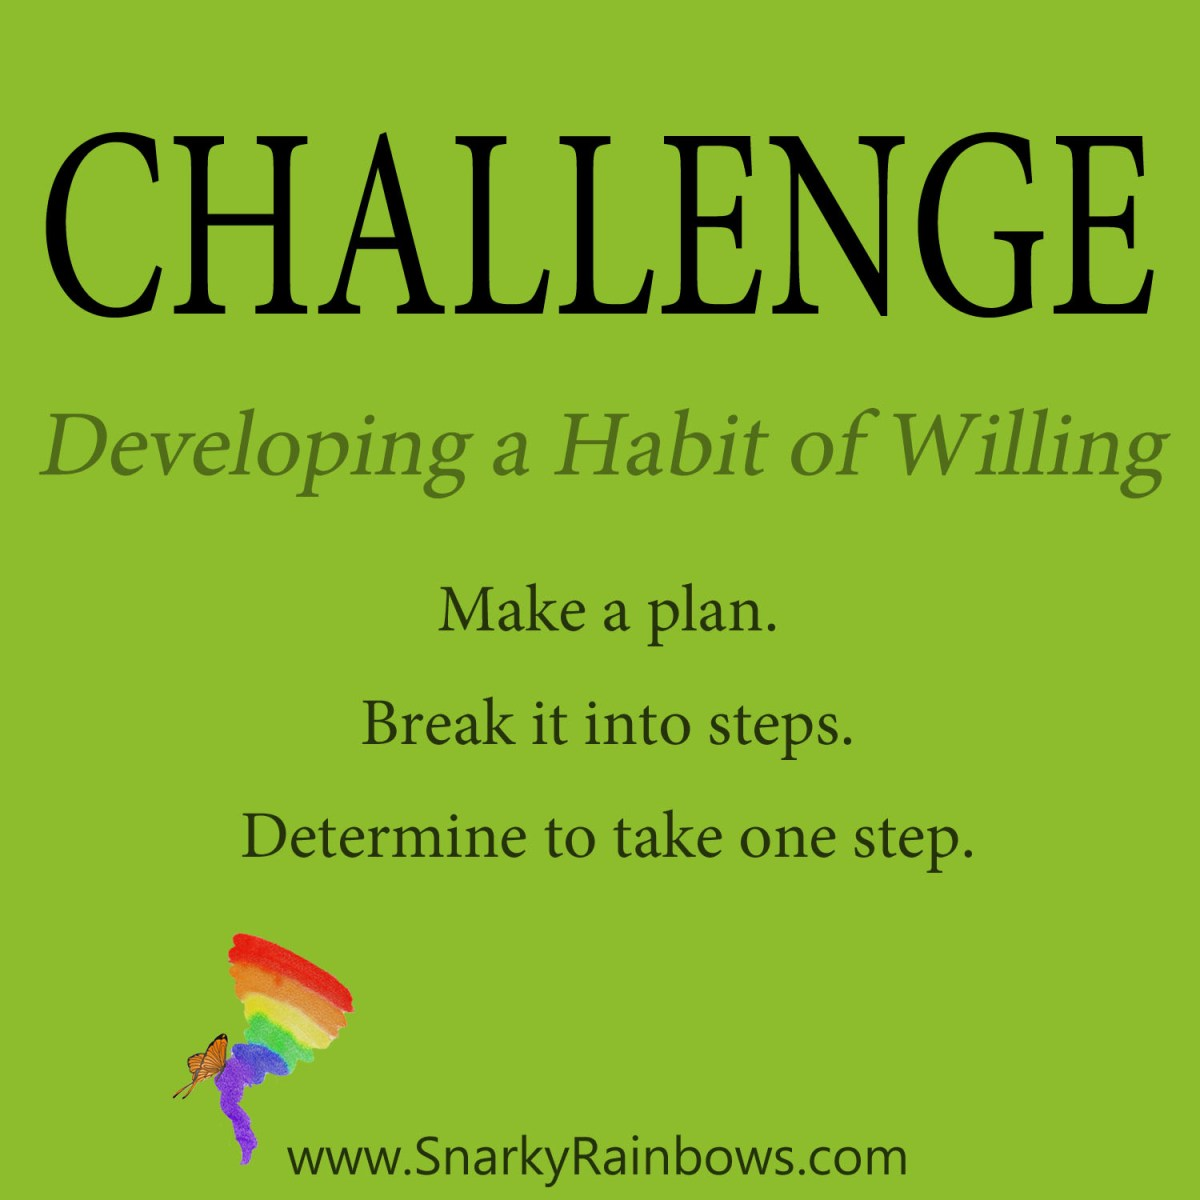 Daily Challenge - habit of willing to move a little bit closer